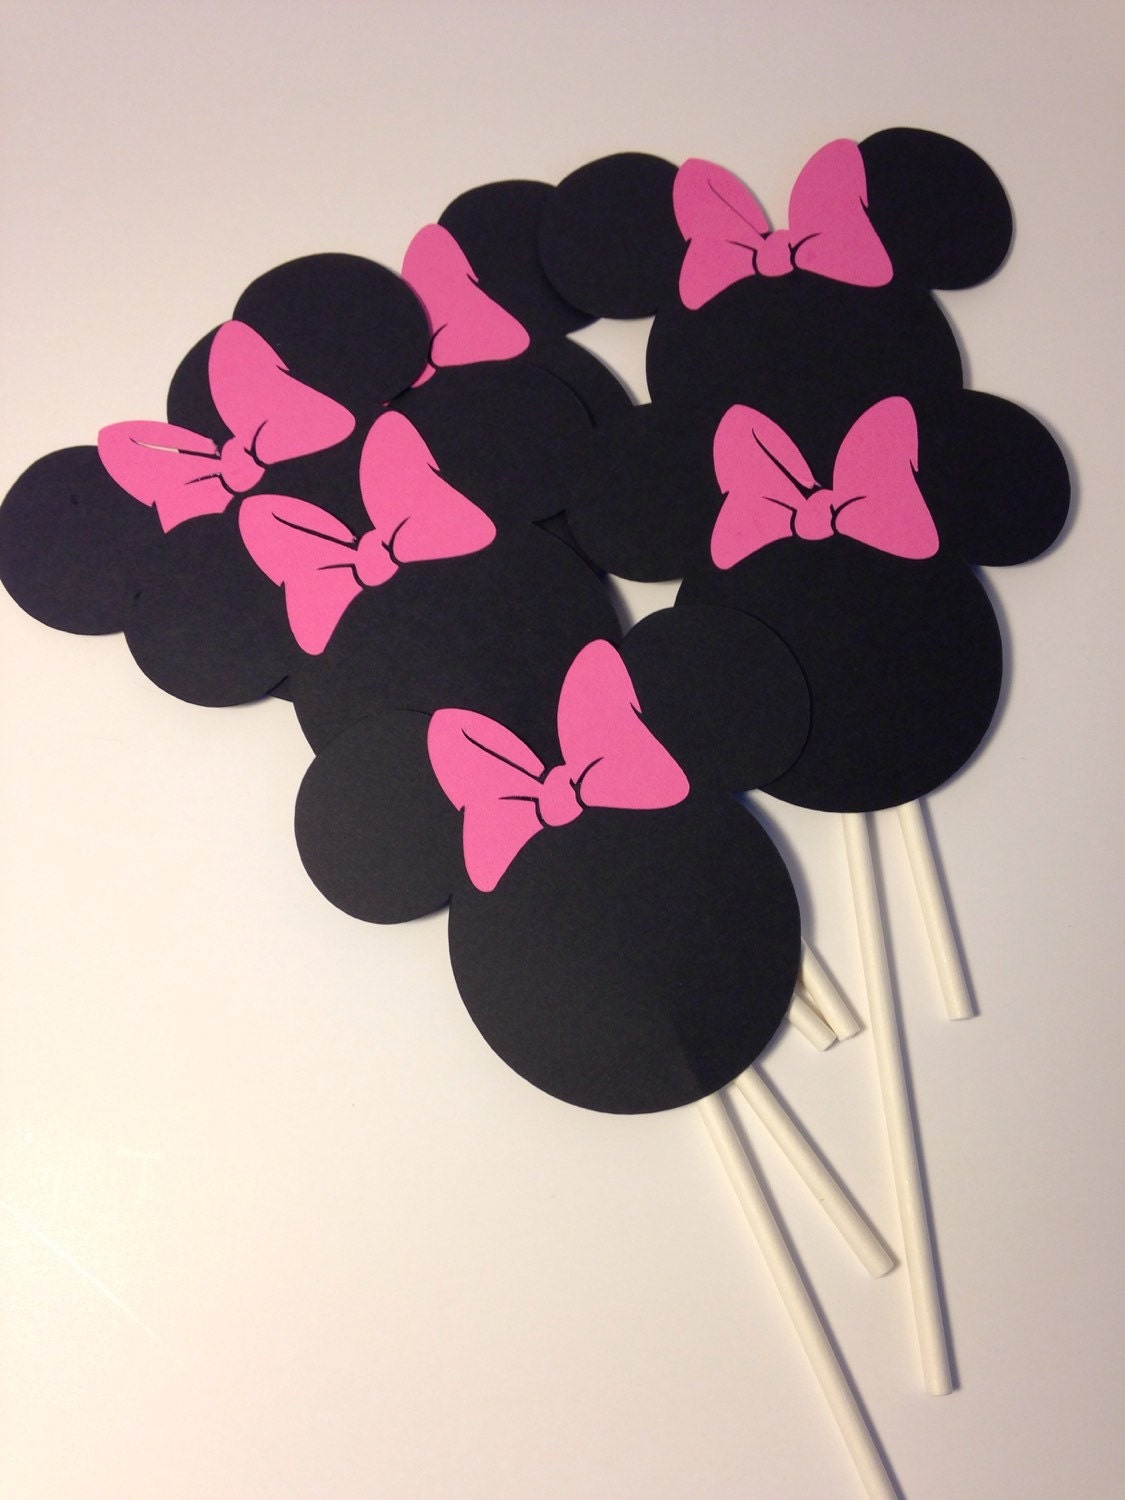 Minnie Mouse Silhouette Cupcake Toppers by PoppyPaperDesigns